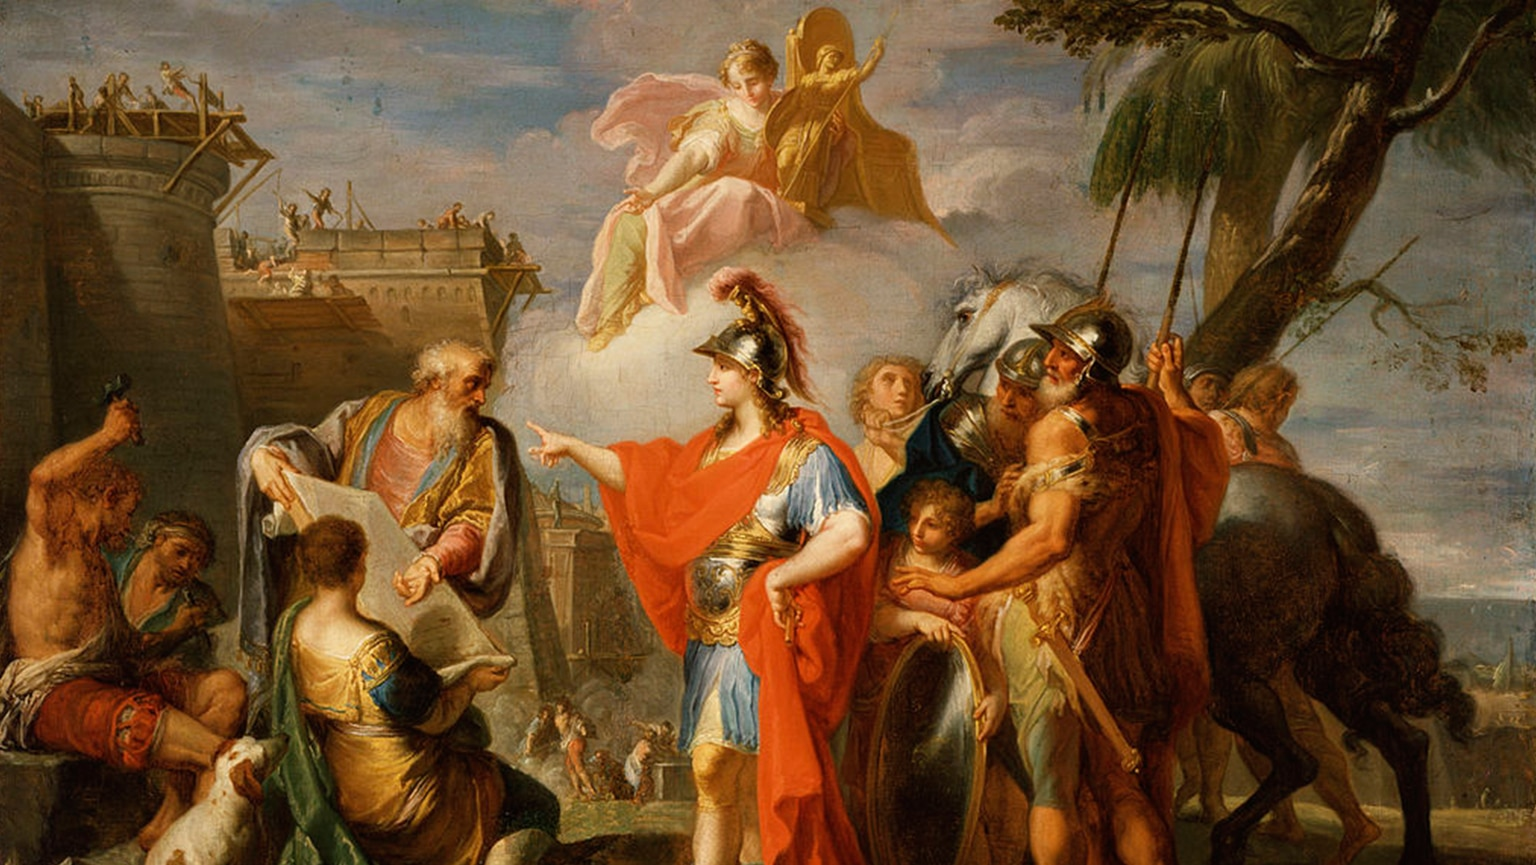 Humans as Gods in the Greco-Roman World